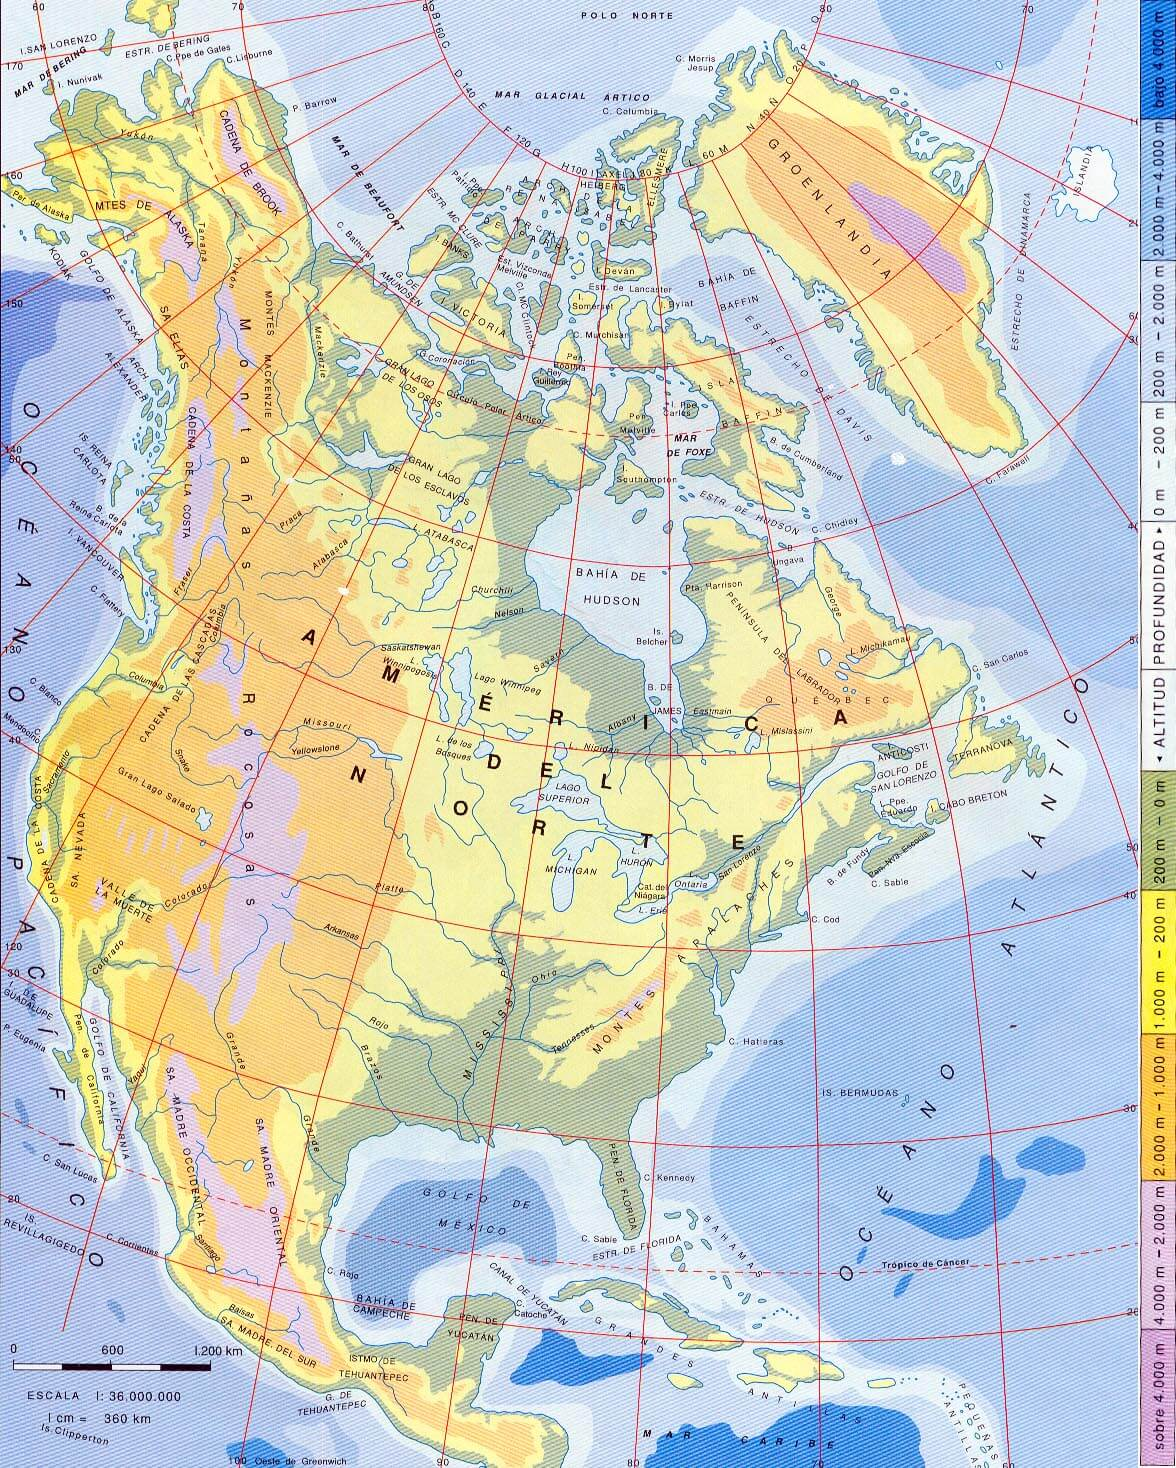 North America Physical Map Blank